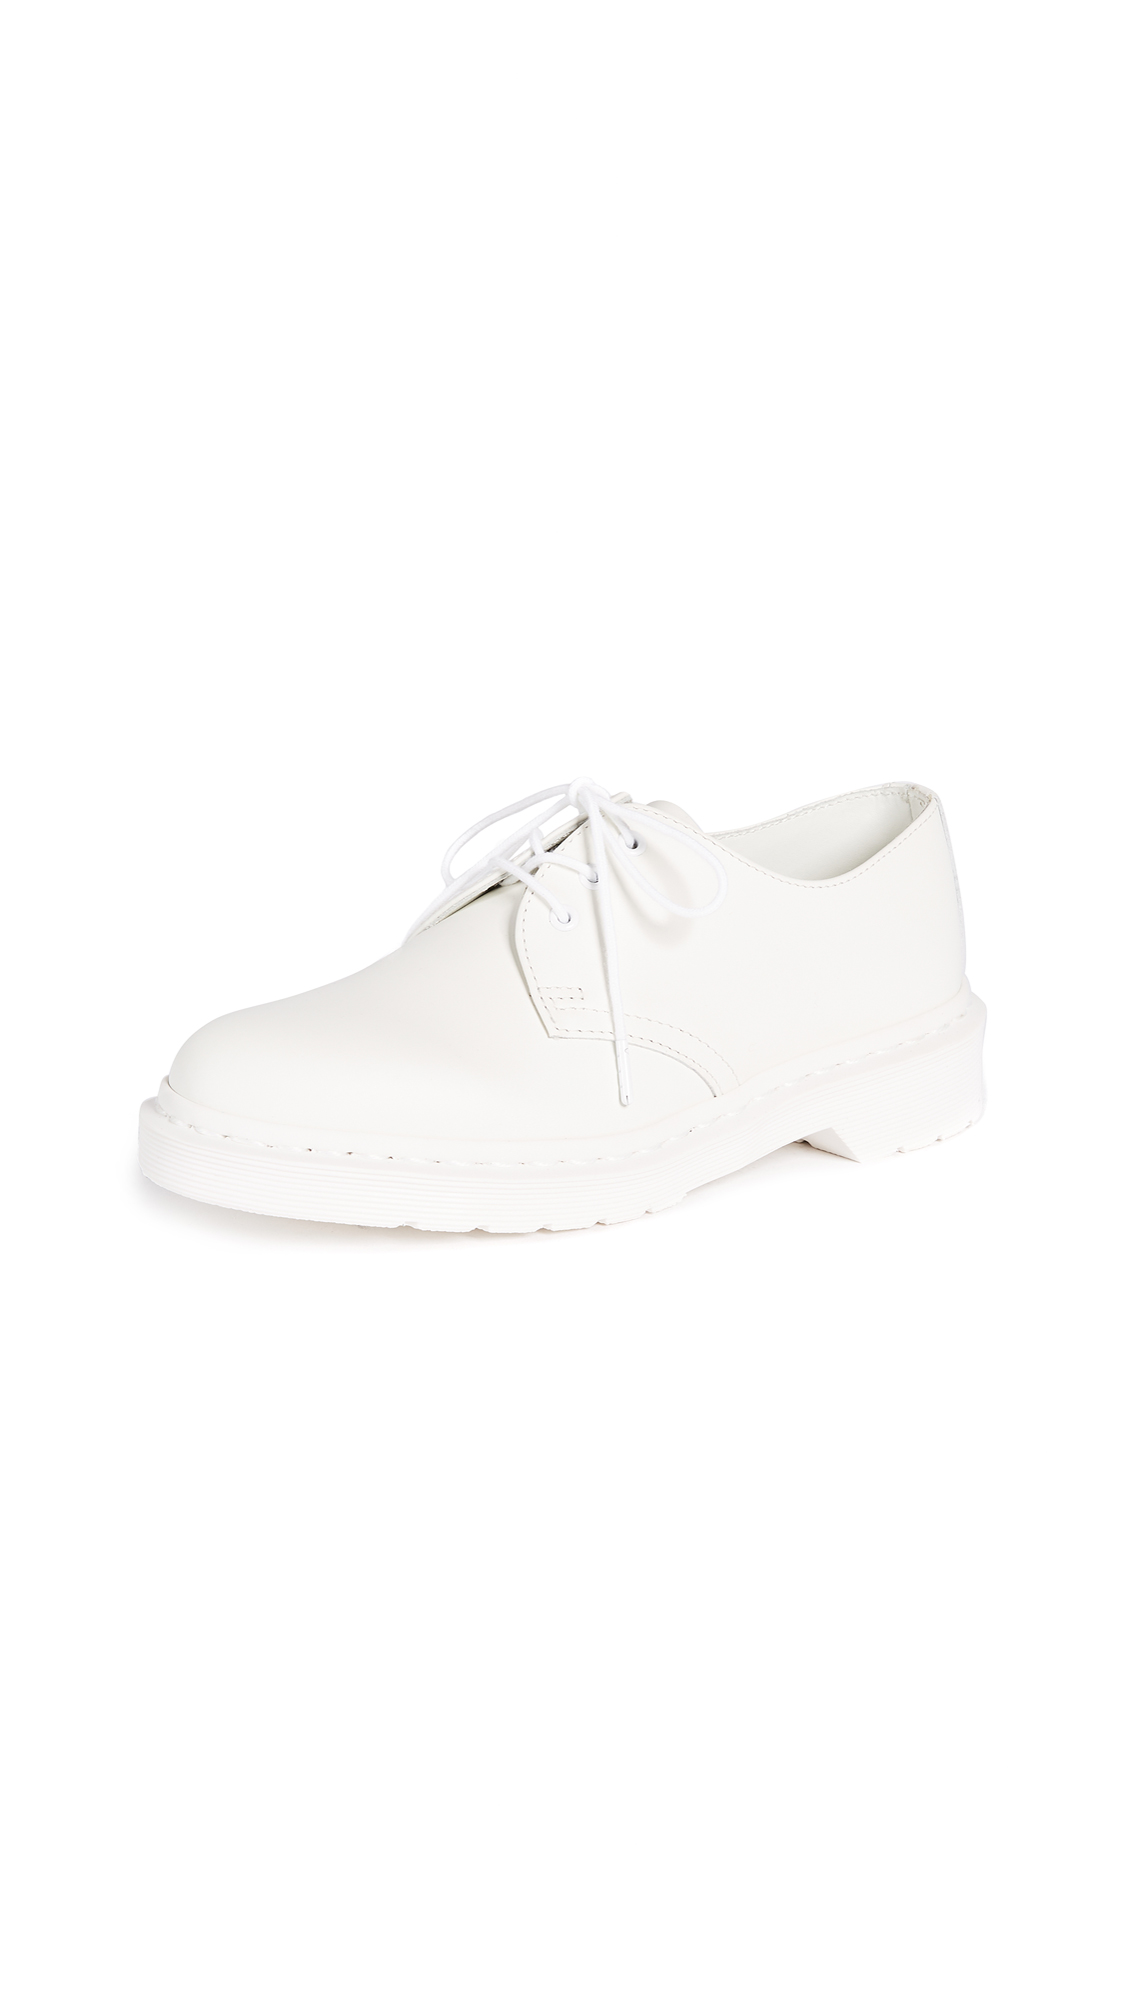 Buy Dr. Martens 1461 Mono 3 Eye Shoe online, shop Dr. Martens